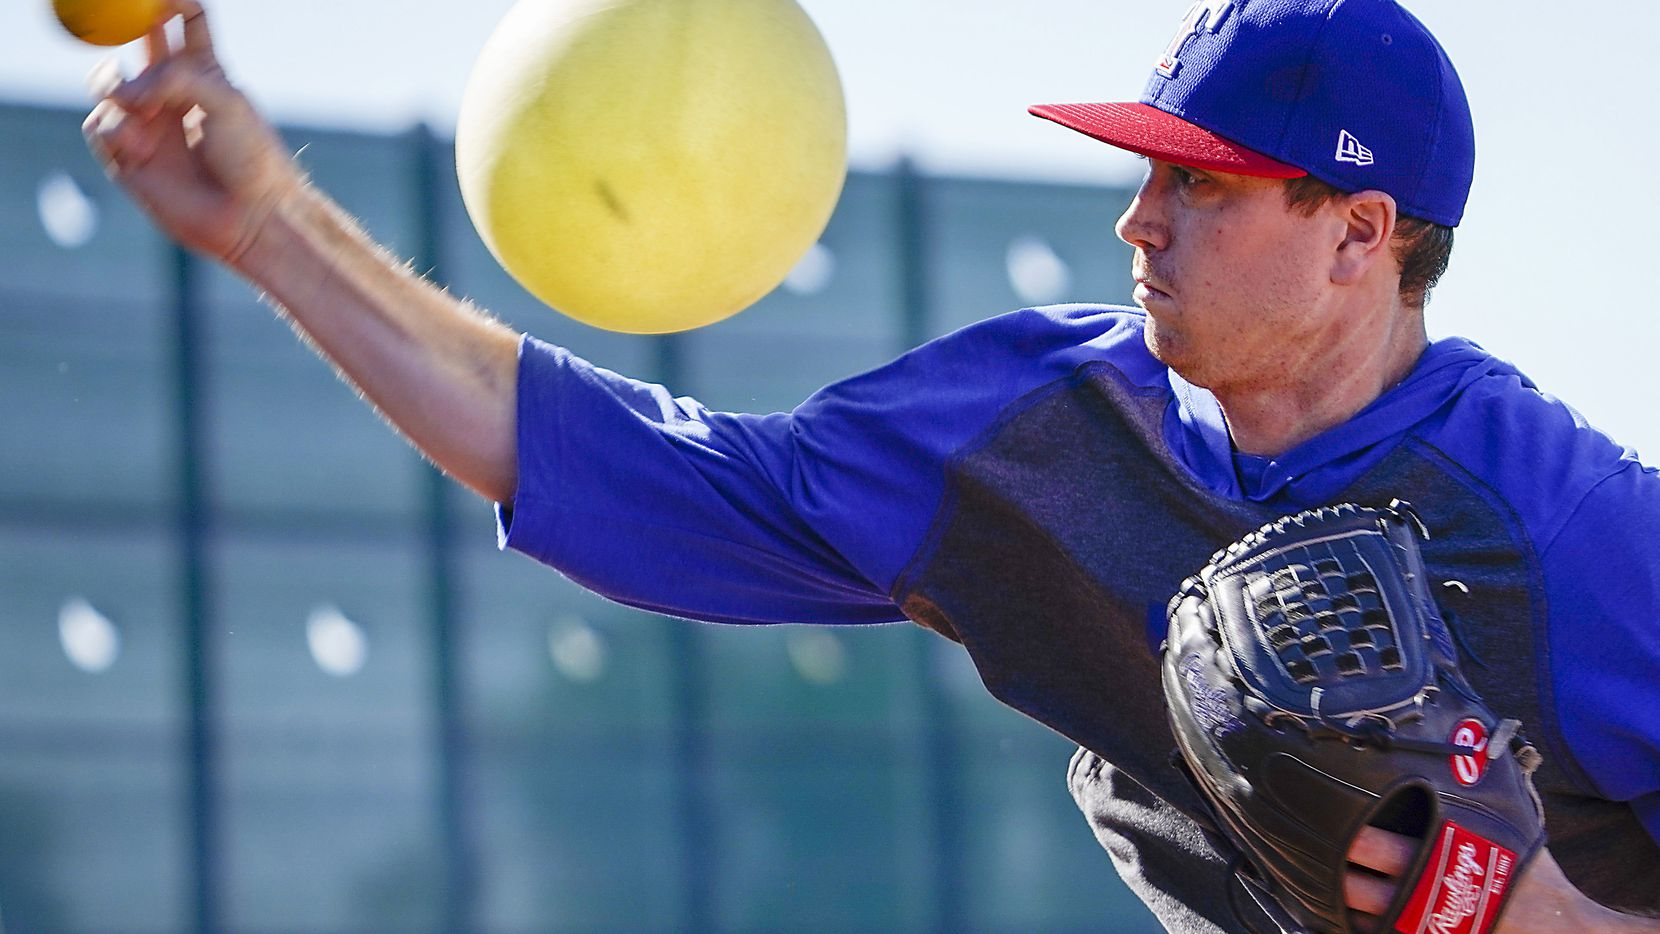 Texas Rangers pitcher Kyle Gibson works with a heavy ball and a connection ball (inflatable ball) during a spring training workout at the team's training facility on Friday, Feb. 14, 2020, in Surprise, Ariz.